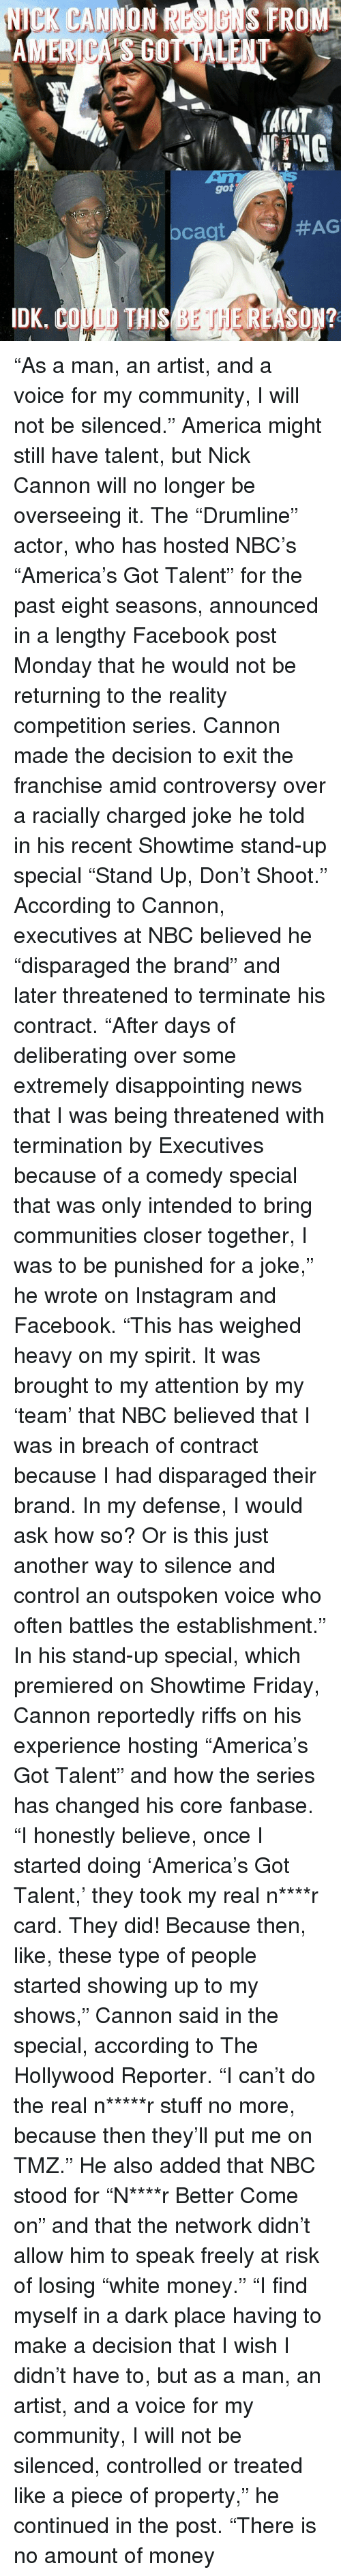 """America, Community, and Facebook: NICK CANNON FROM  AINT  PING  got  #AG  cagt  IDK, CO  THIS  BET EREASON? """"As a man, an artist, and a voice for my community, I will not be silenced."""" America might still have talent, but Nick Cannon will no longer be overseeing it. The """"Drumline"""" actor, who has hosted NBC's """"America's Got Talent"""" for the past eight seasons, announced in a lengthy Facebook post Monday that he would not be returning to the reality competition series. Cannon made the decision to exit the franchise amid controversy over a racially charged joke he told in his recent Showtime stand-up special """"Stand Up, Don't Shoot."""" According to Cannon, executives at NBC believed he """"disparaged the brand"""" and later threatened to terminate his contract. """"After days of deliberating over some extremely disappointing news that I was being threatened with termination by Executives because of a comedy special that was only intended to bring communities closer together, I was to be punished for a joke,"""" he wrote on Instagram and Facebook. """"This has weighed heavy on my spirit. It was brought to my attention by my 'team' that NBC believed that I was in breach of contract because I had disparaged their brand. In my defense, I would ask how so? Or is this just another way to silence and control an outspoken voice who often battles the establishment."""" In his stand-up special, which premiered on Showtime Friday, Cannon reportedly riffs on his experience hosting """"America's Got Talent"""" and how the series has changed his core fanbase. """"I honestly believe, once I started doing 'America's Got Talent,' they took my real n****r card. They did! Because then, like, these type of people started showing up to my shows,"""" Cannon said in the special, according to The Hollywood Reporter. """"I can't do the real n*****r stuff no more, because then they'll put me on TMZ."""" He also added that NBC stood for """"N****r Better Come on"""" and that the network didn't allow him to speak freely at risk of losing """"wh"""